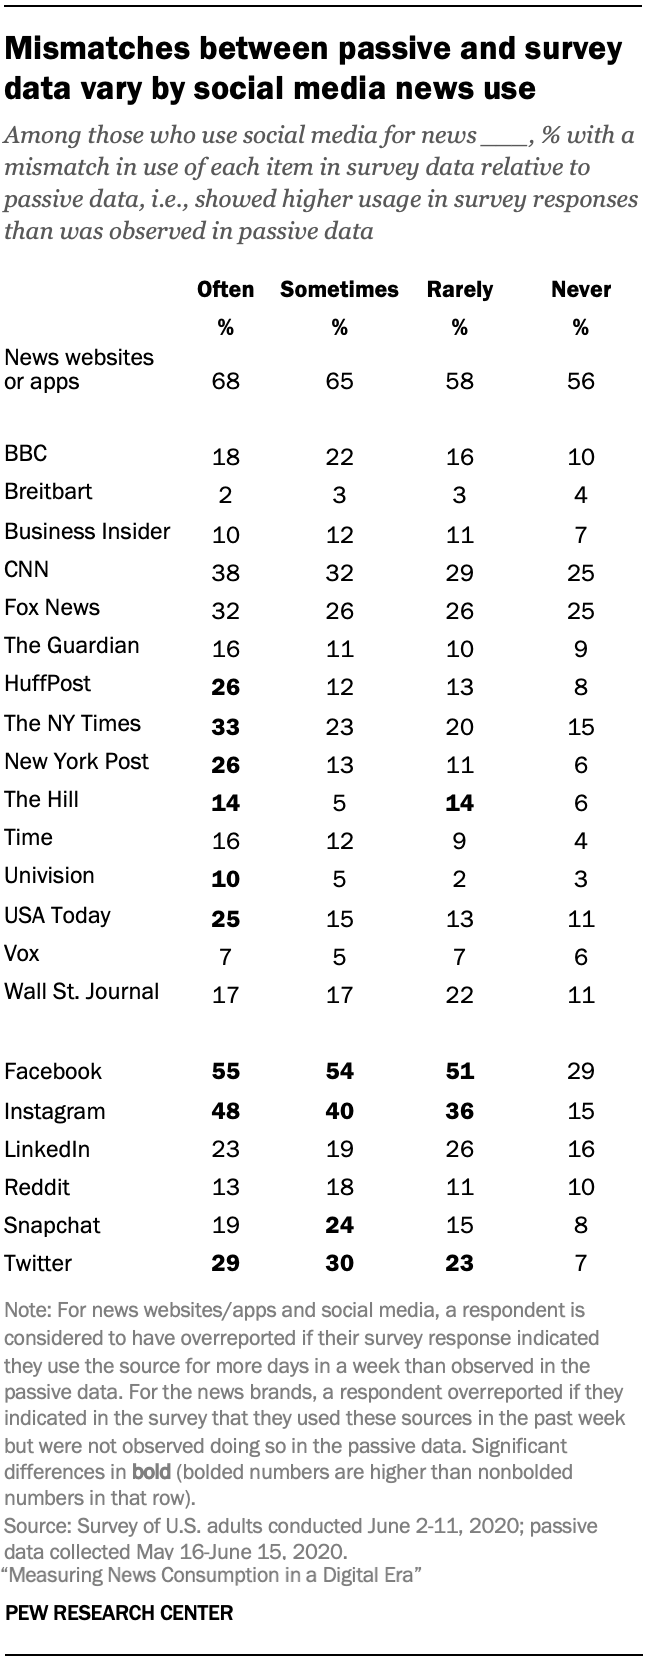 Mismatches between passive and survey data vary by social media news use